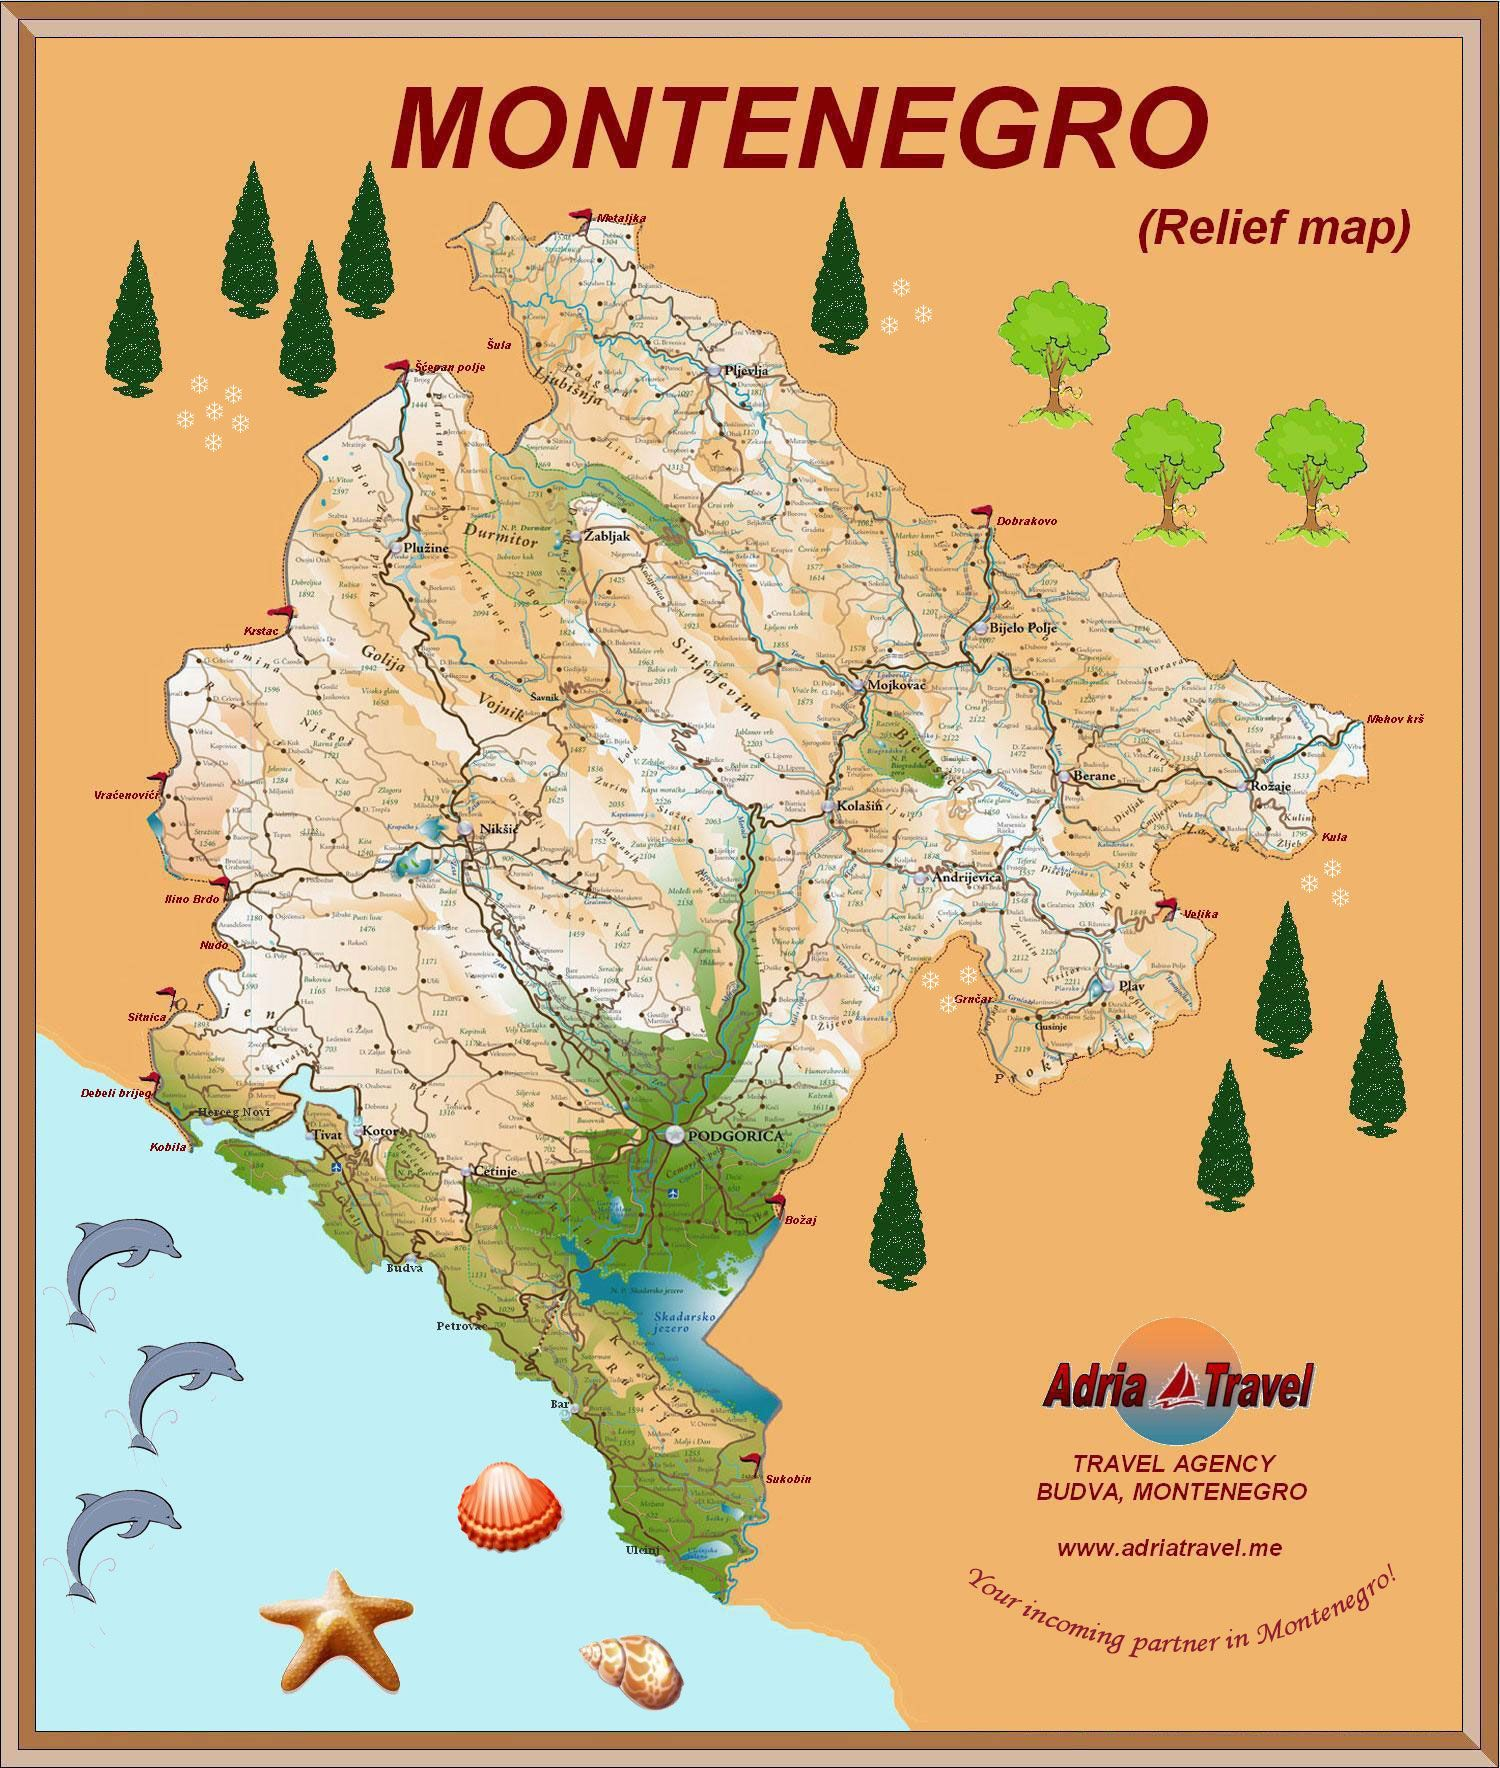 Montenegro Mapa Crne Gore Jpg 1500 1768 Relief Map Travel